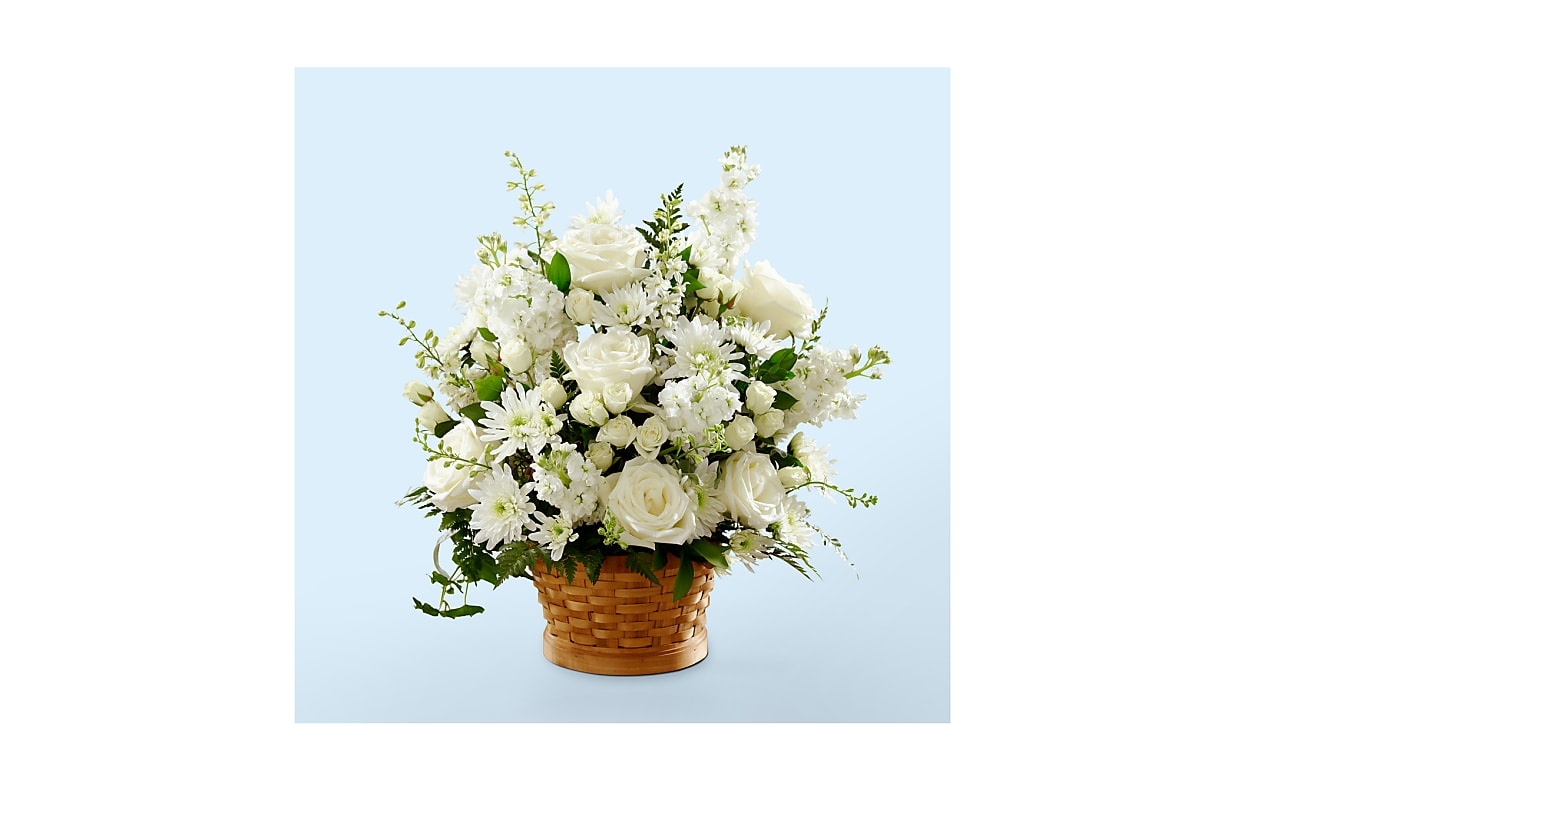 Heartfelt Condolences Arrangement - Image 1 Of 3